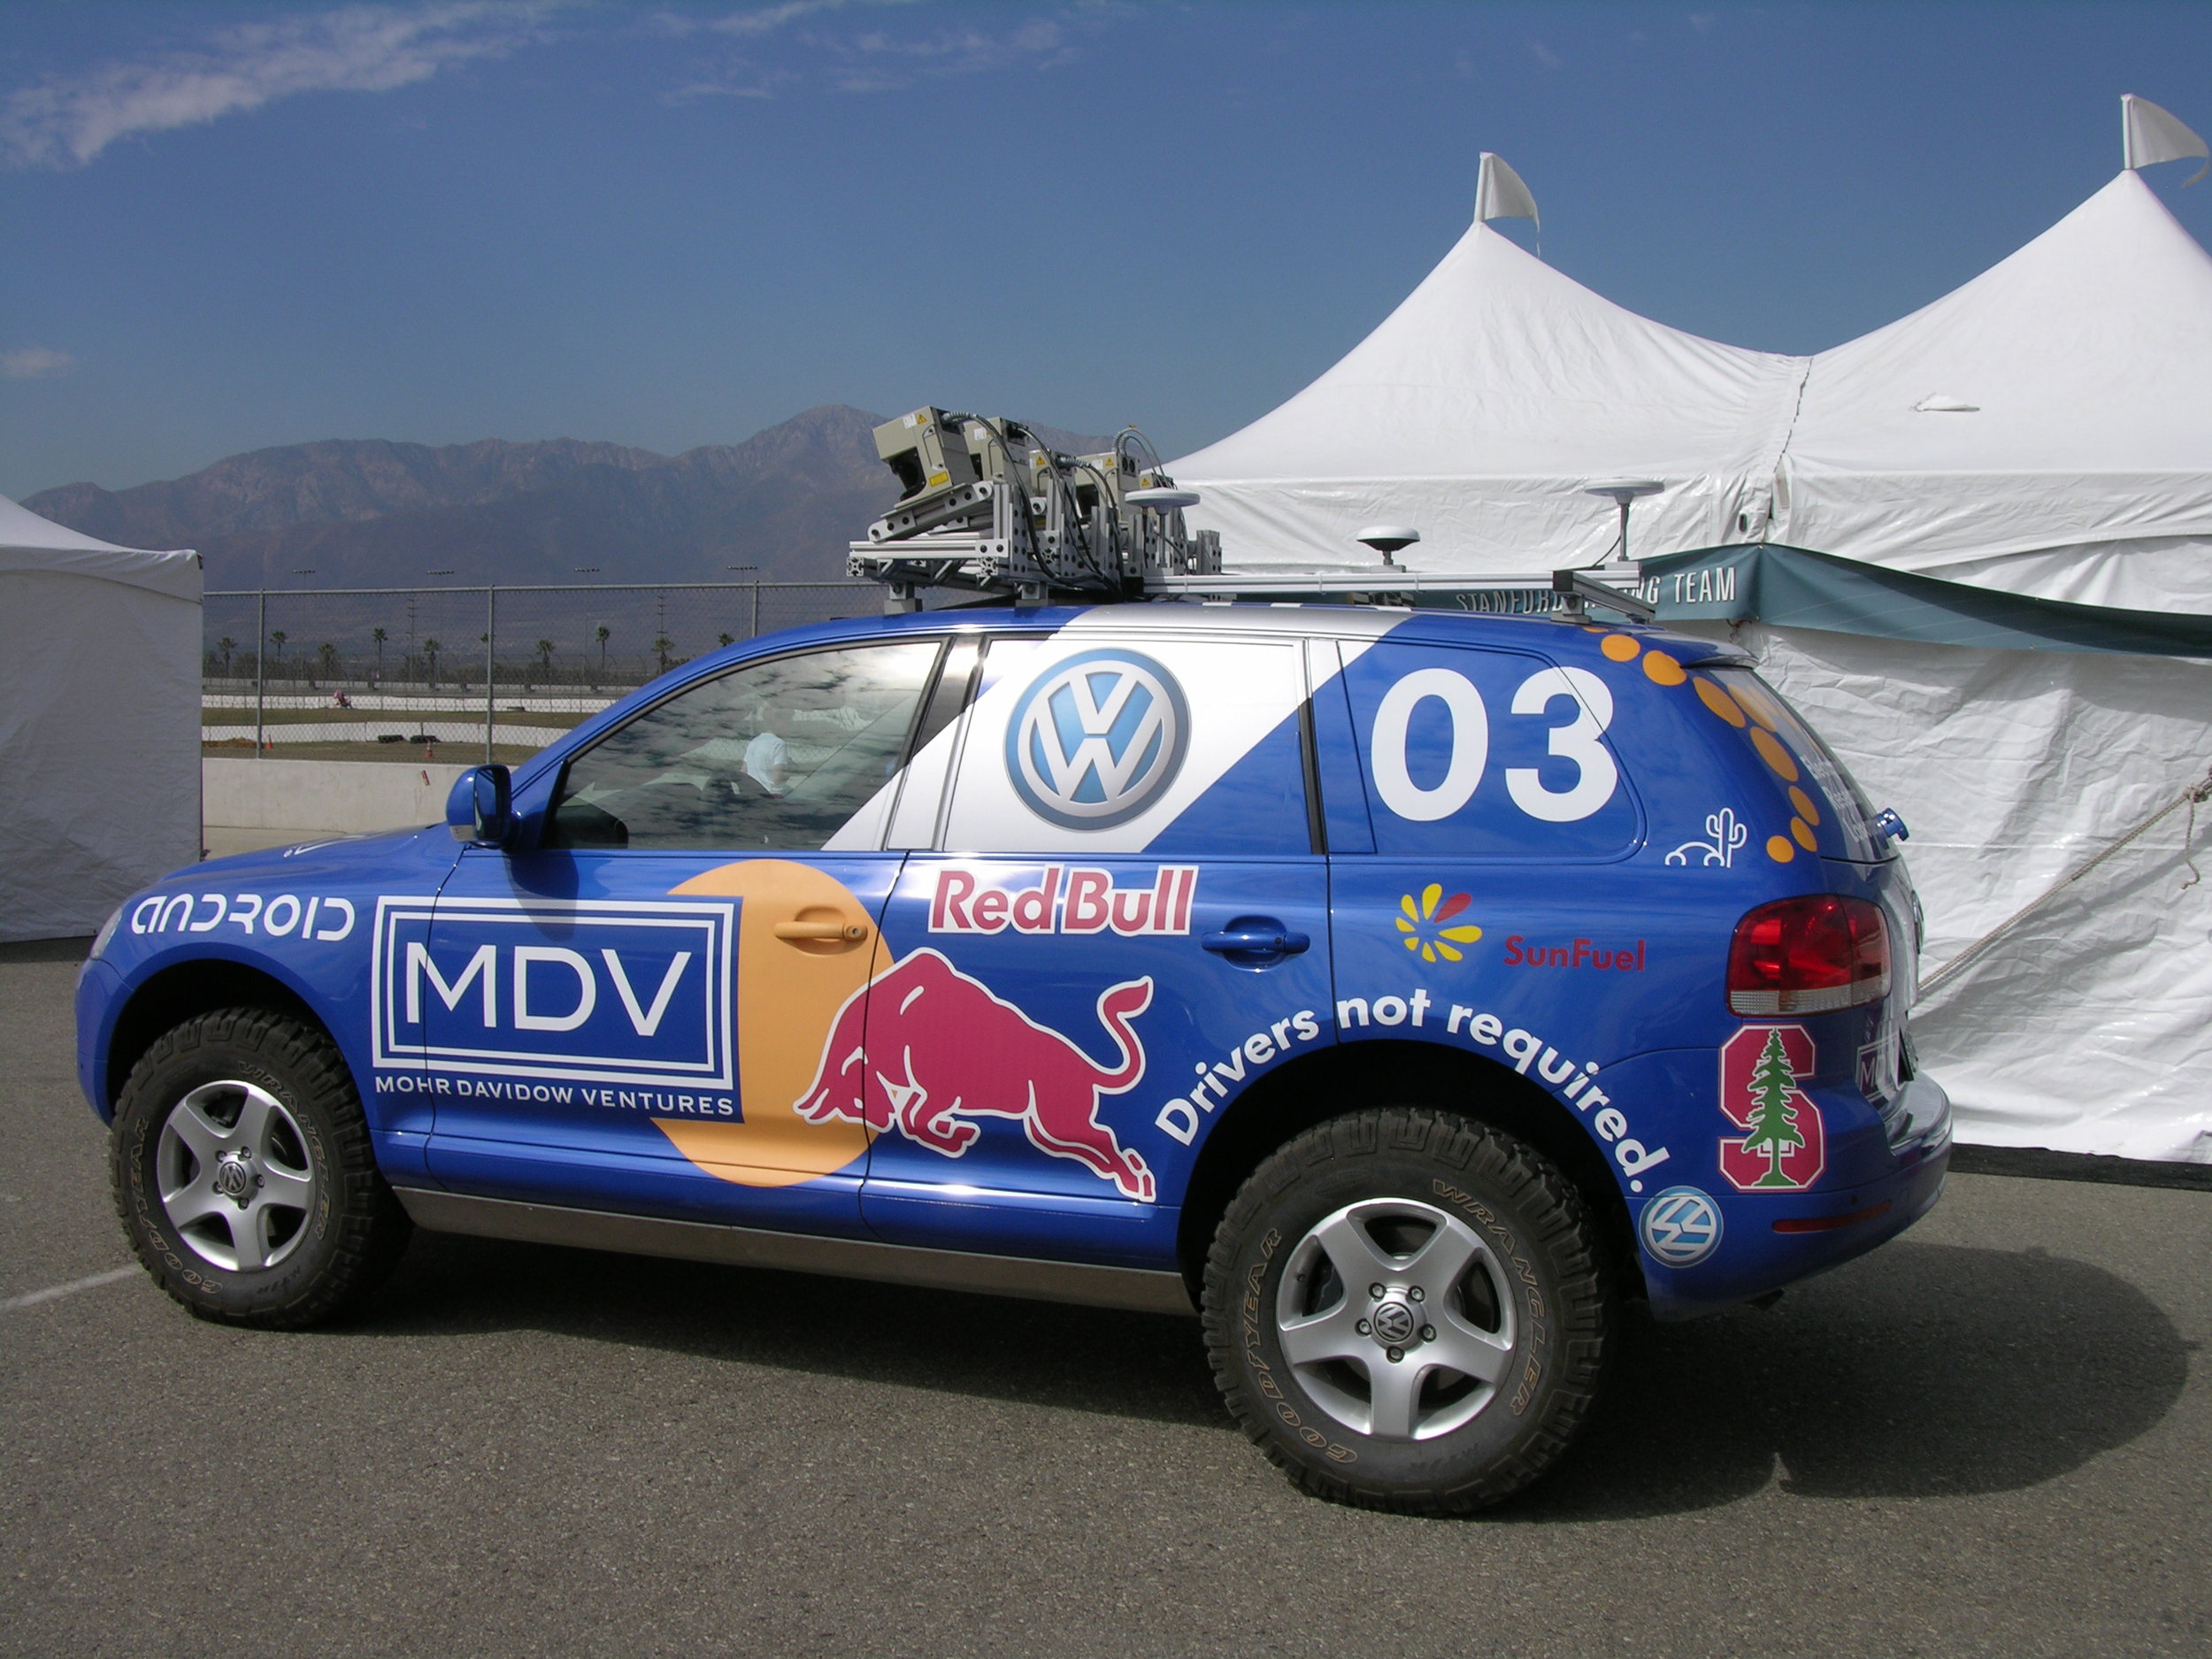 From the 2005 Grand Challenge at the California Speedway. Source: CC licensed    Flickr    image.